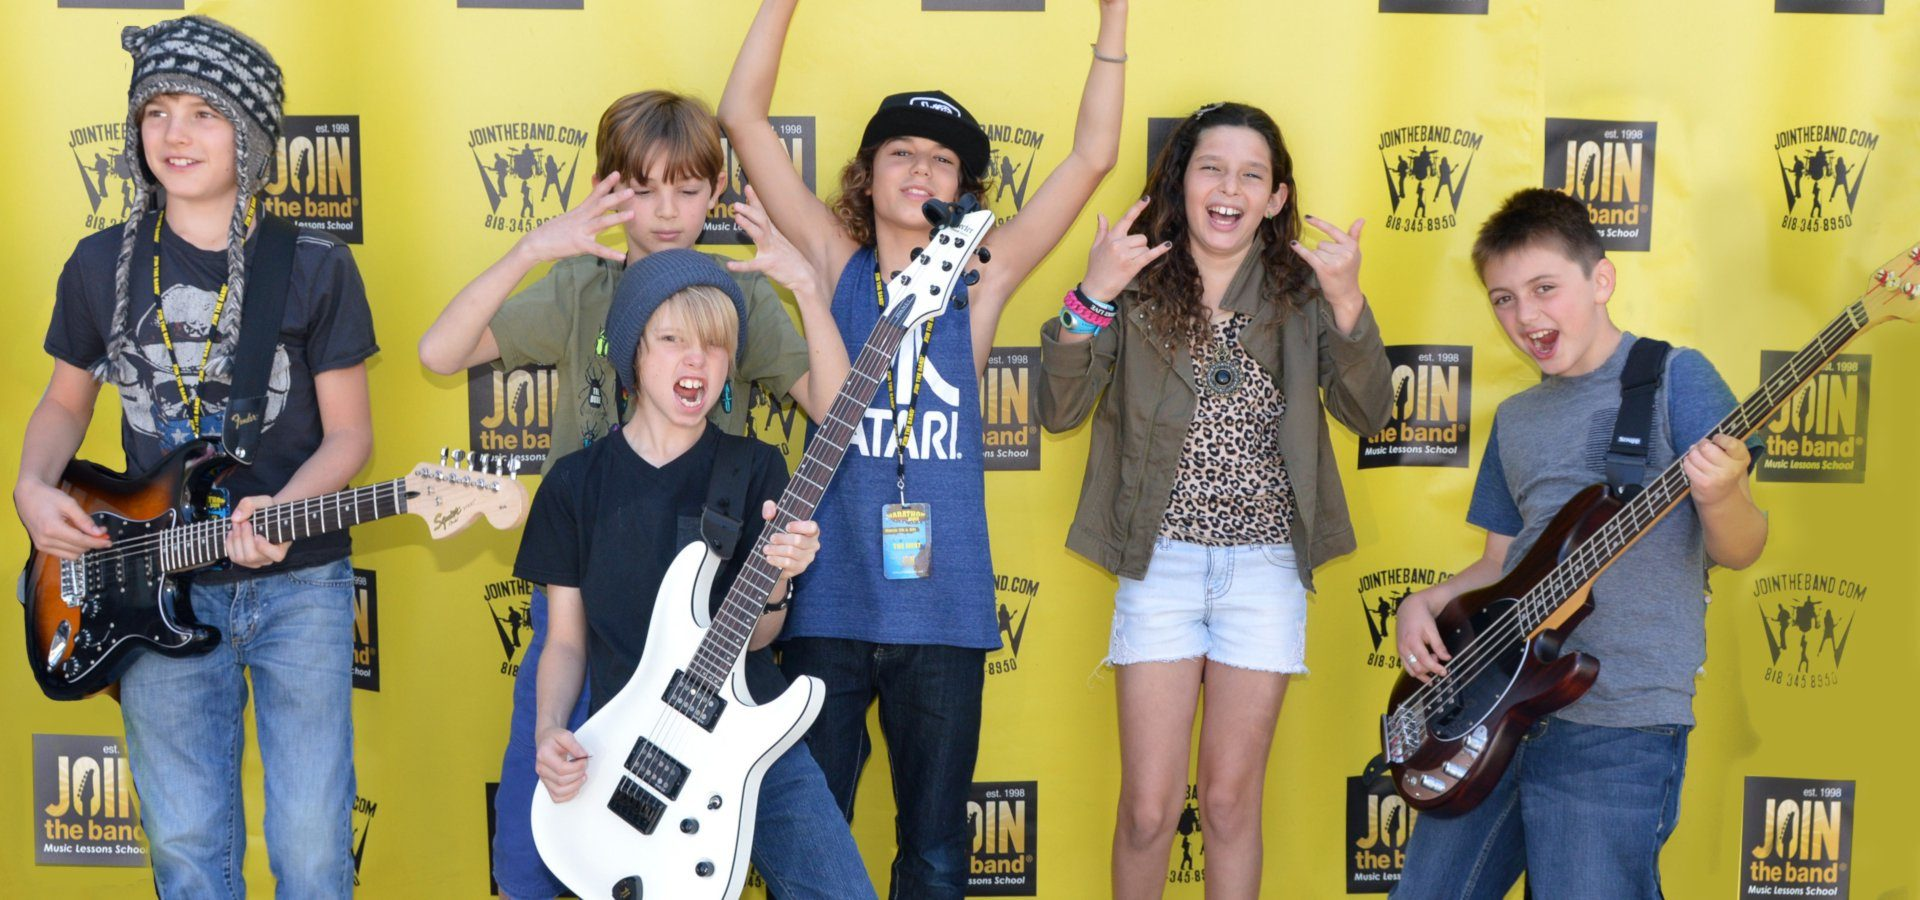 Summer Music Camps - Kids - Sherman Oaks, Los Angeles - Join The Band